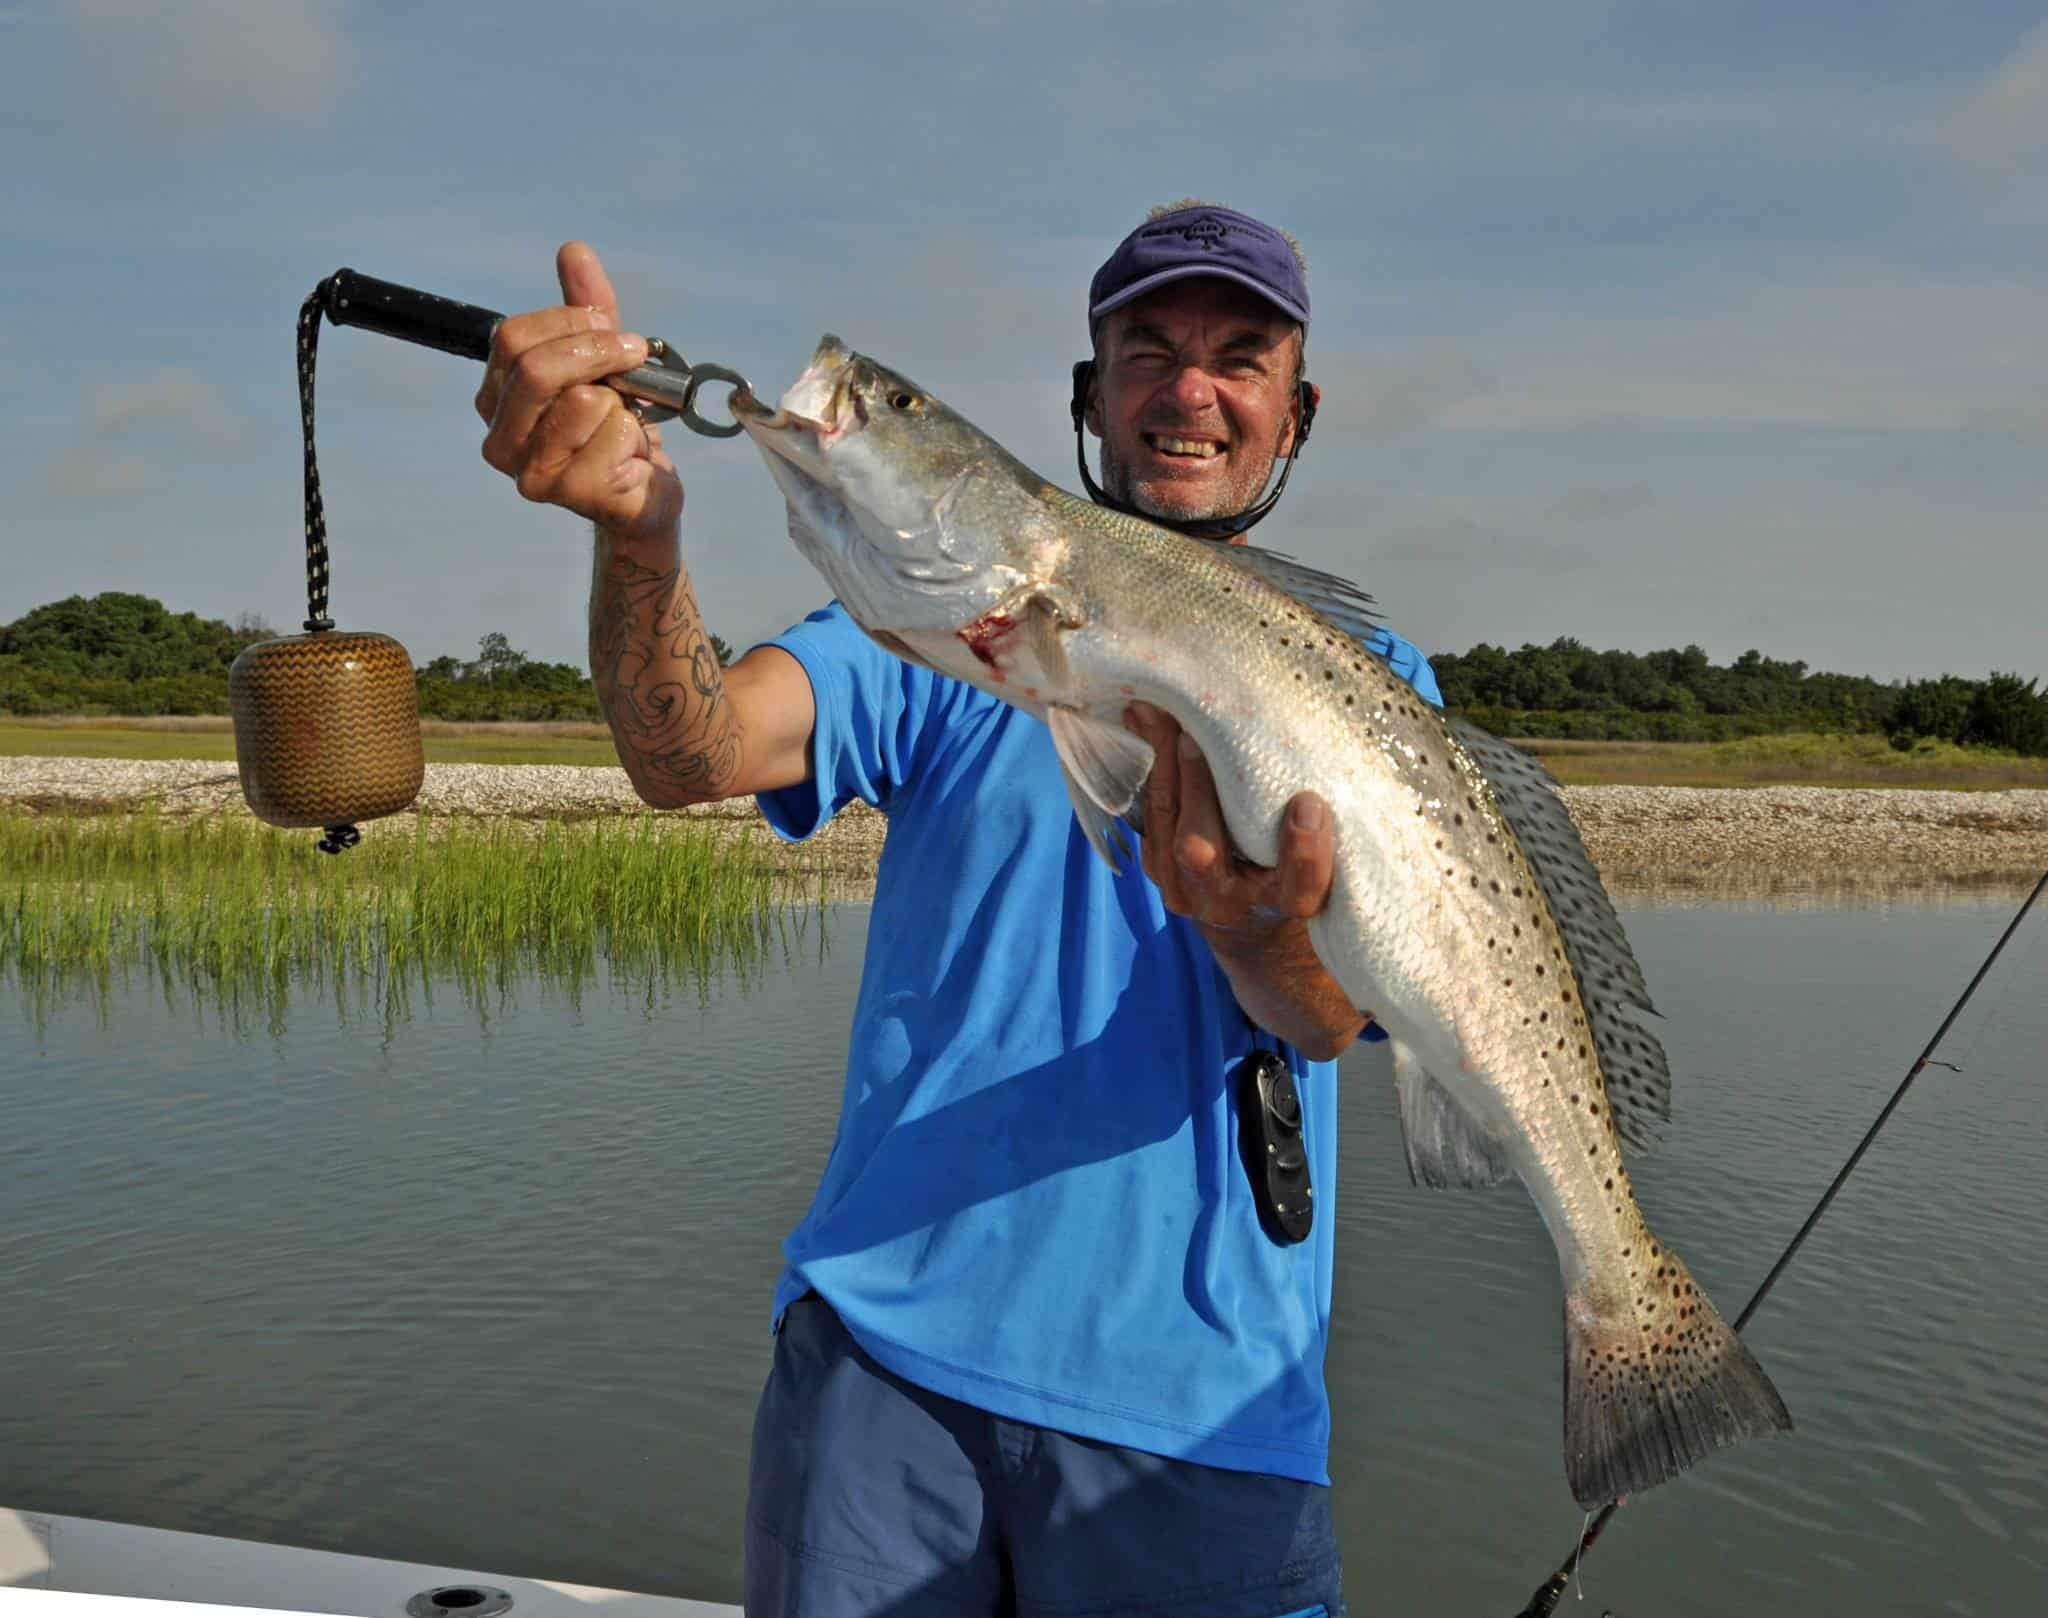 Capt Mike Fishing - NX Fishing Charters - Riley Rods - Team North Fork Composites 2